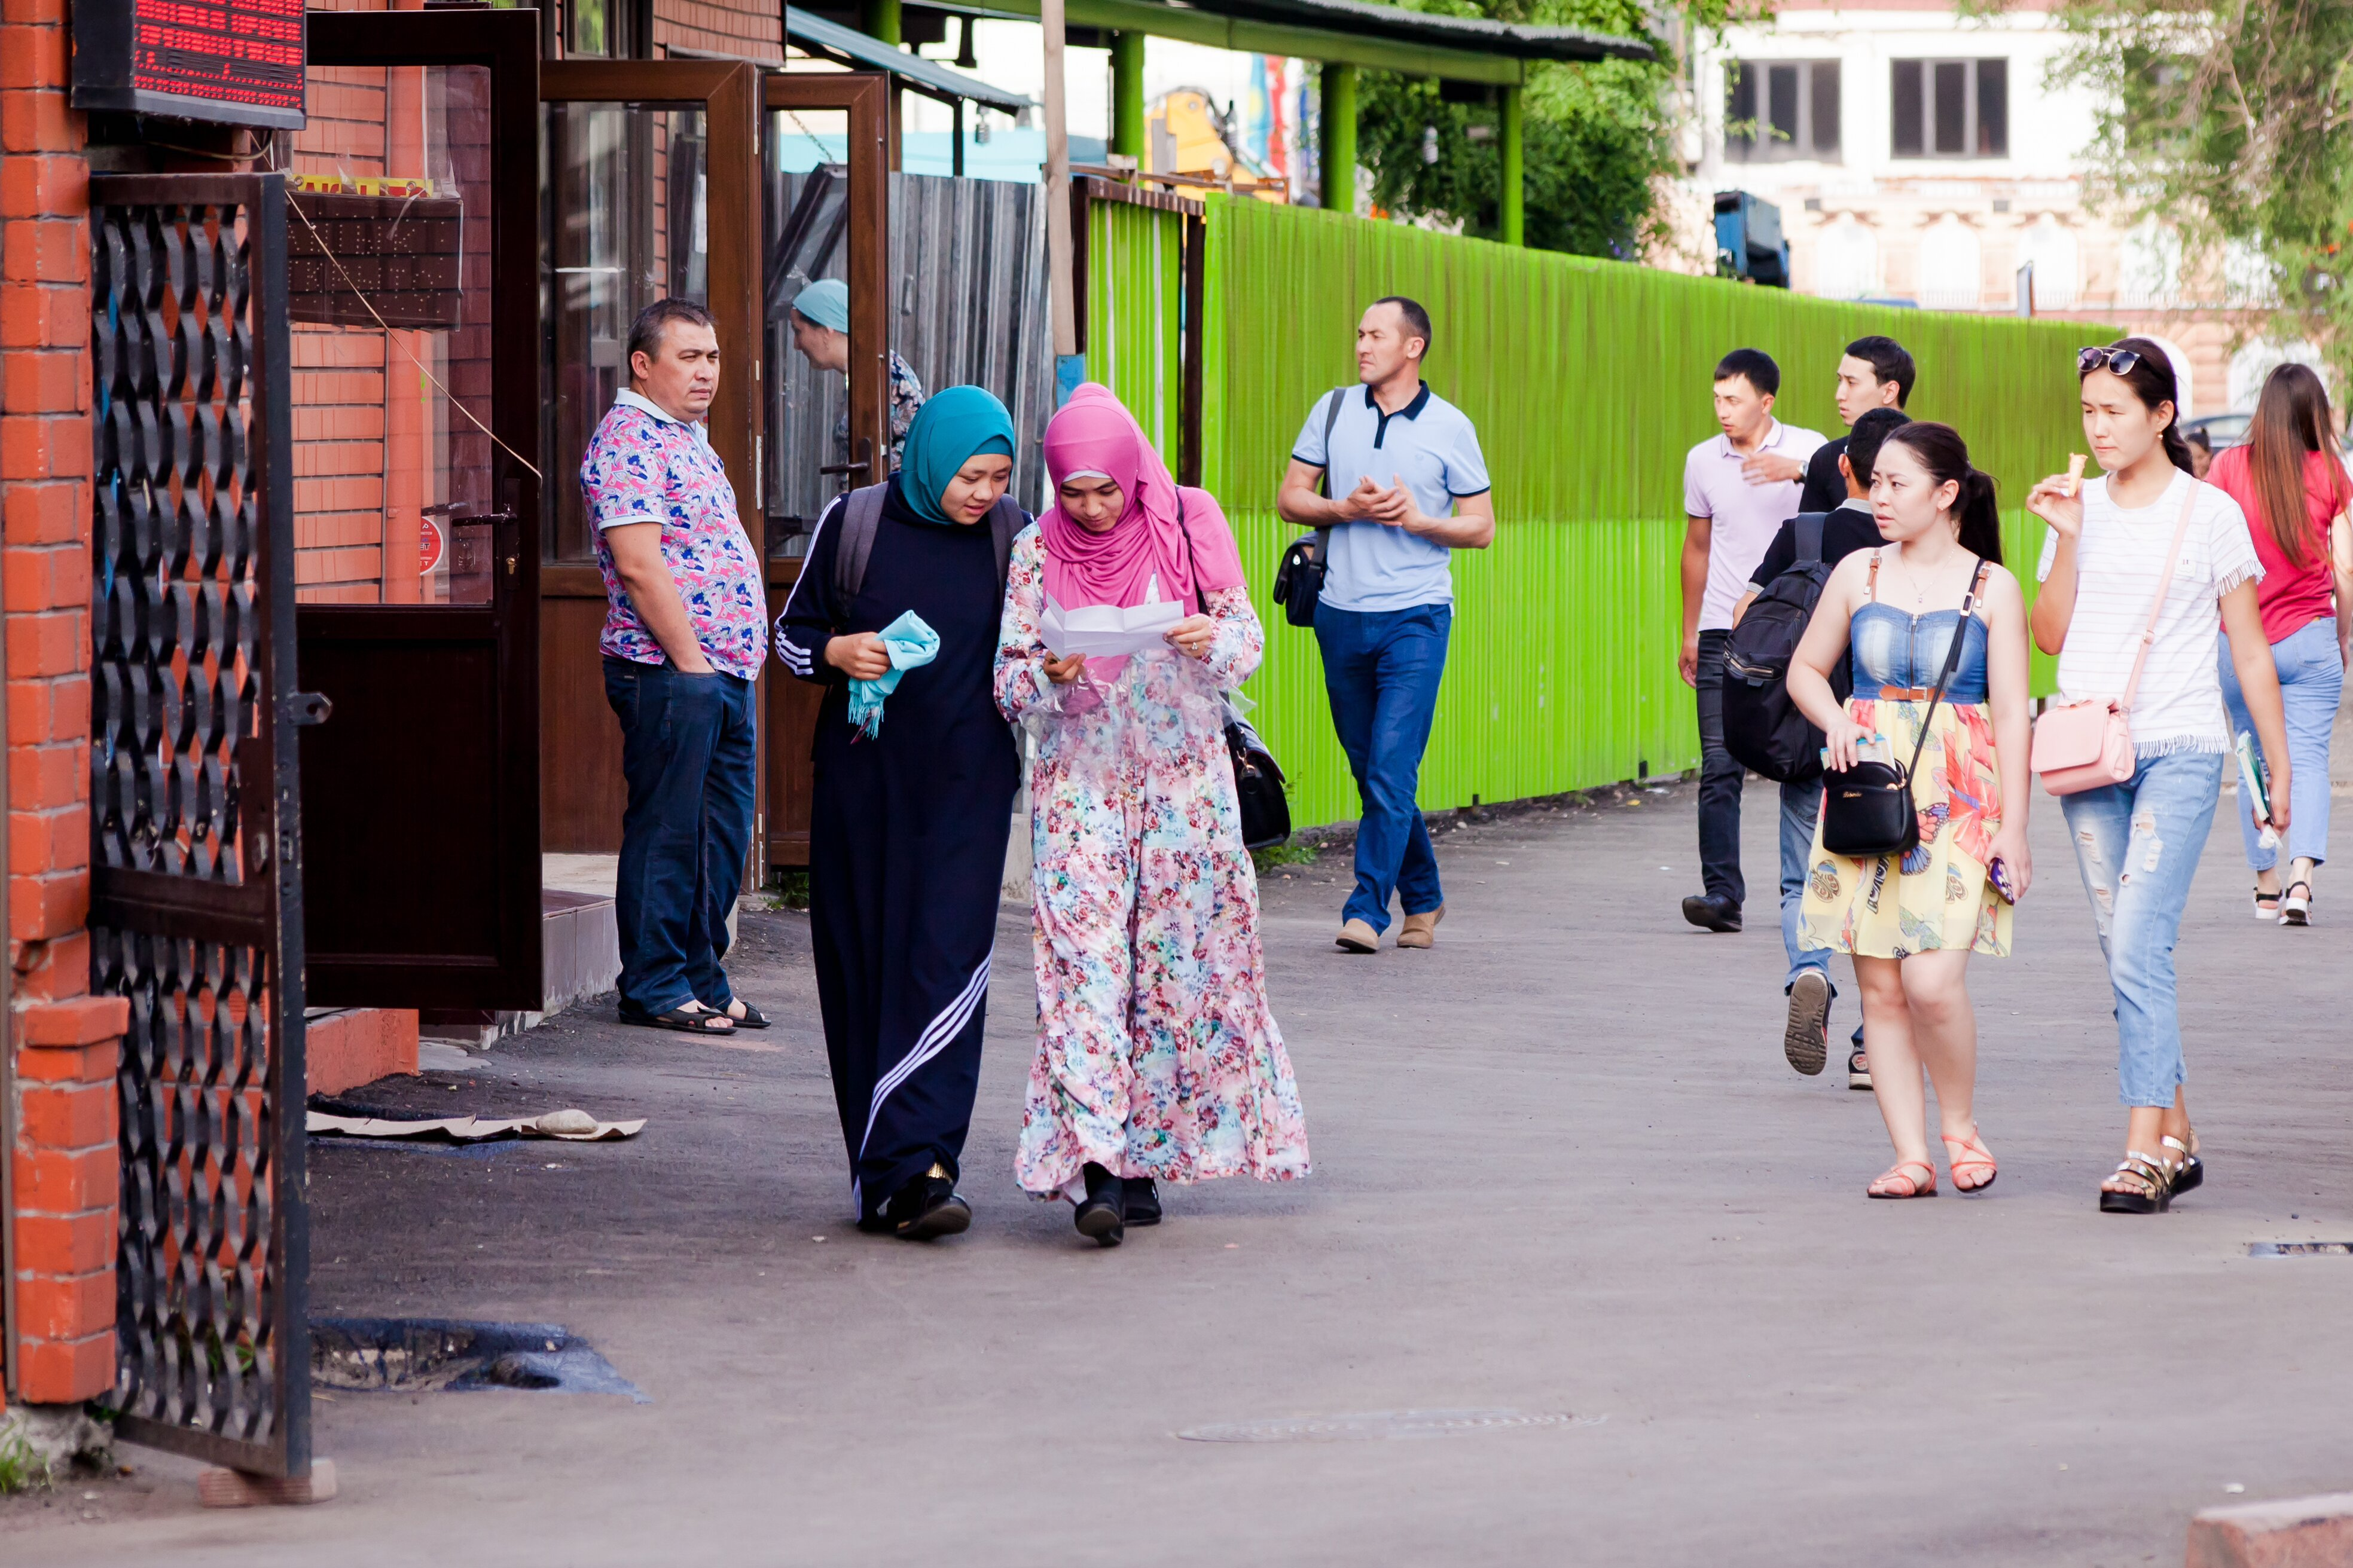 Kyrgyzstan works to stem women's growing role in extremist activity